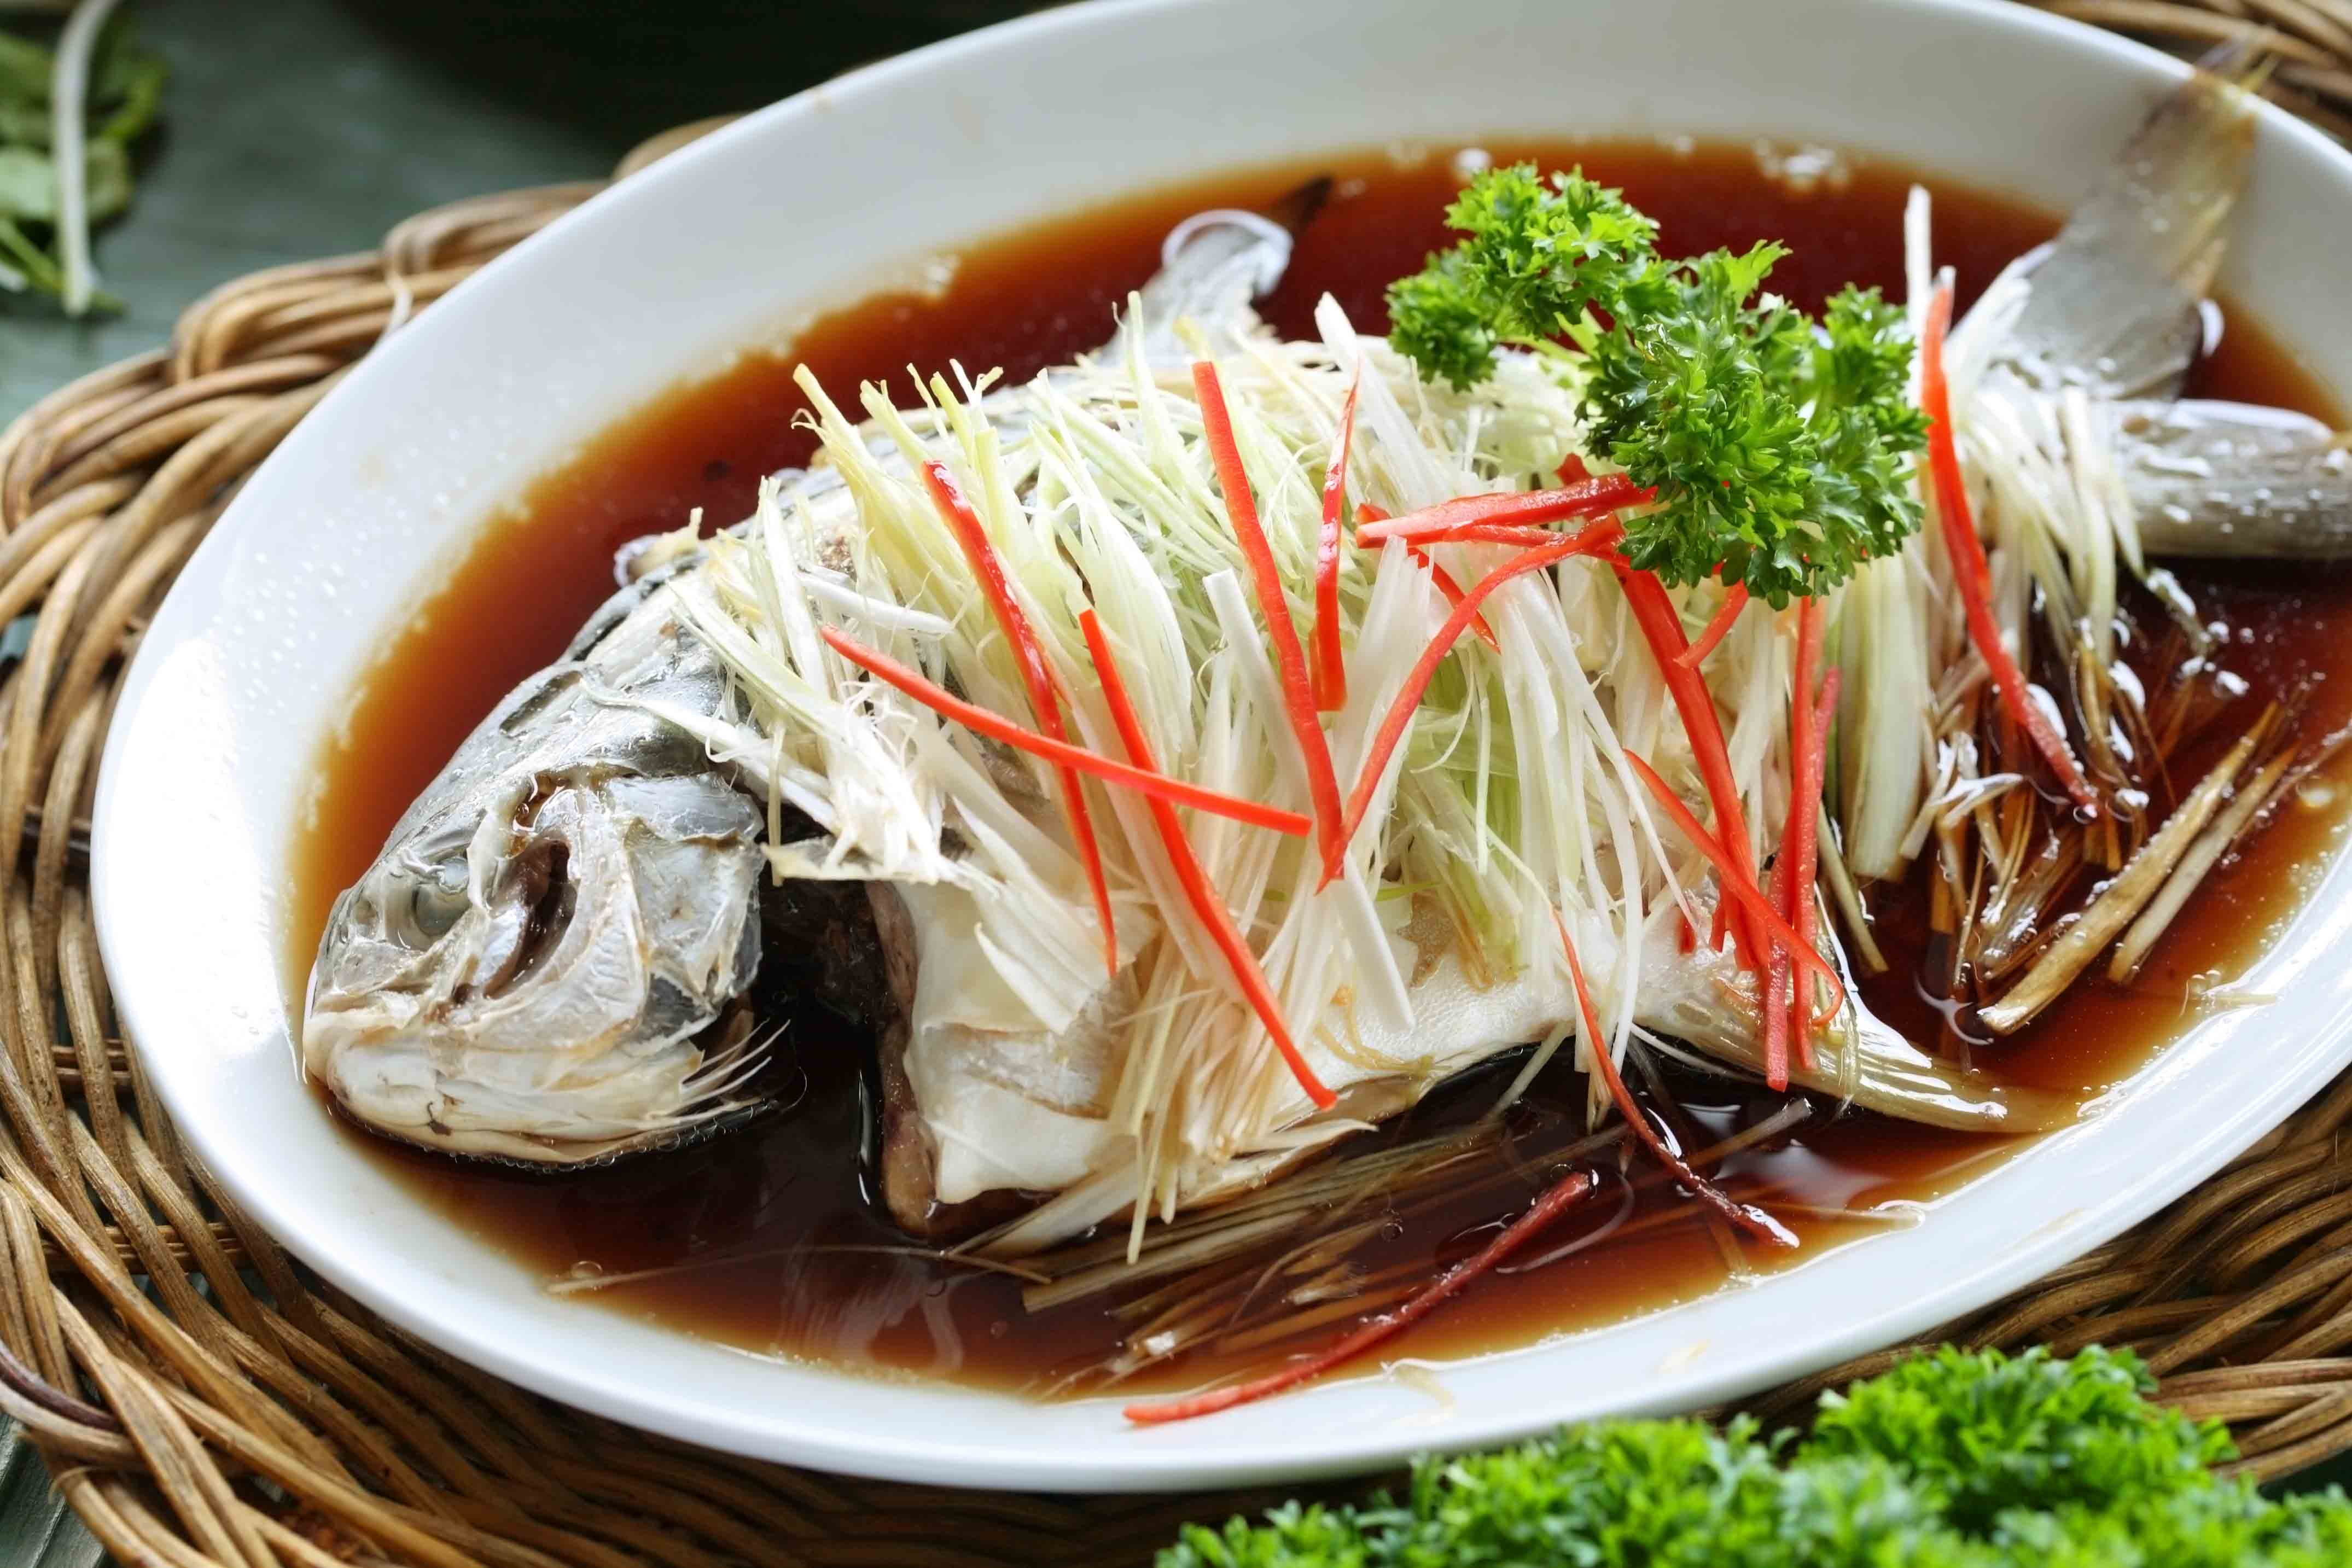 Pomfret, Chinese New Year Dish, Lunar New Year Dish